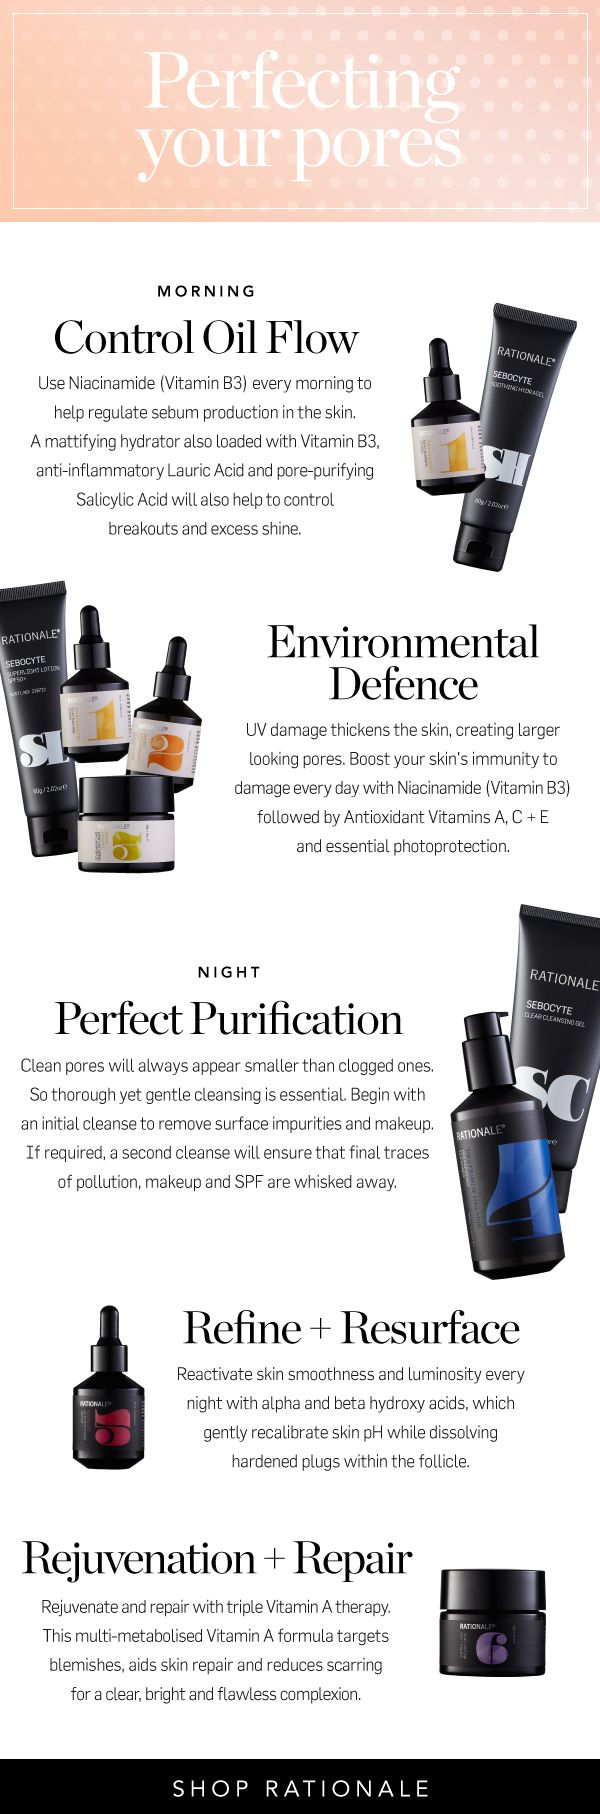 Perfecting your pores with Rationale skincare!